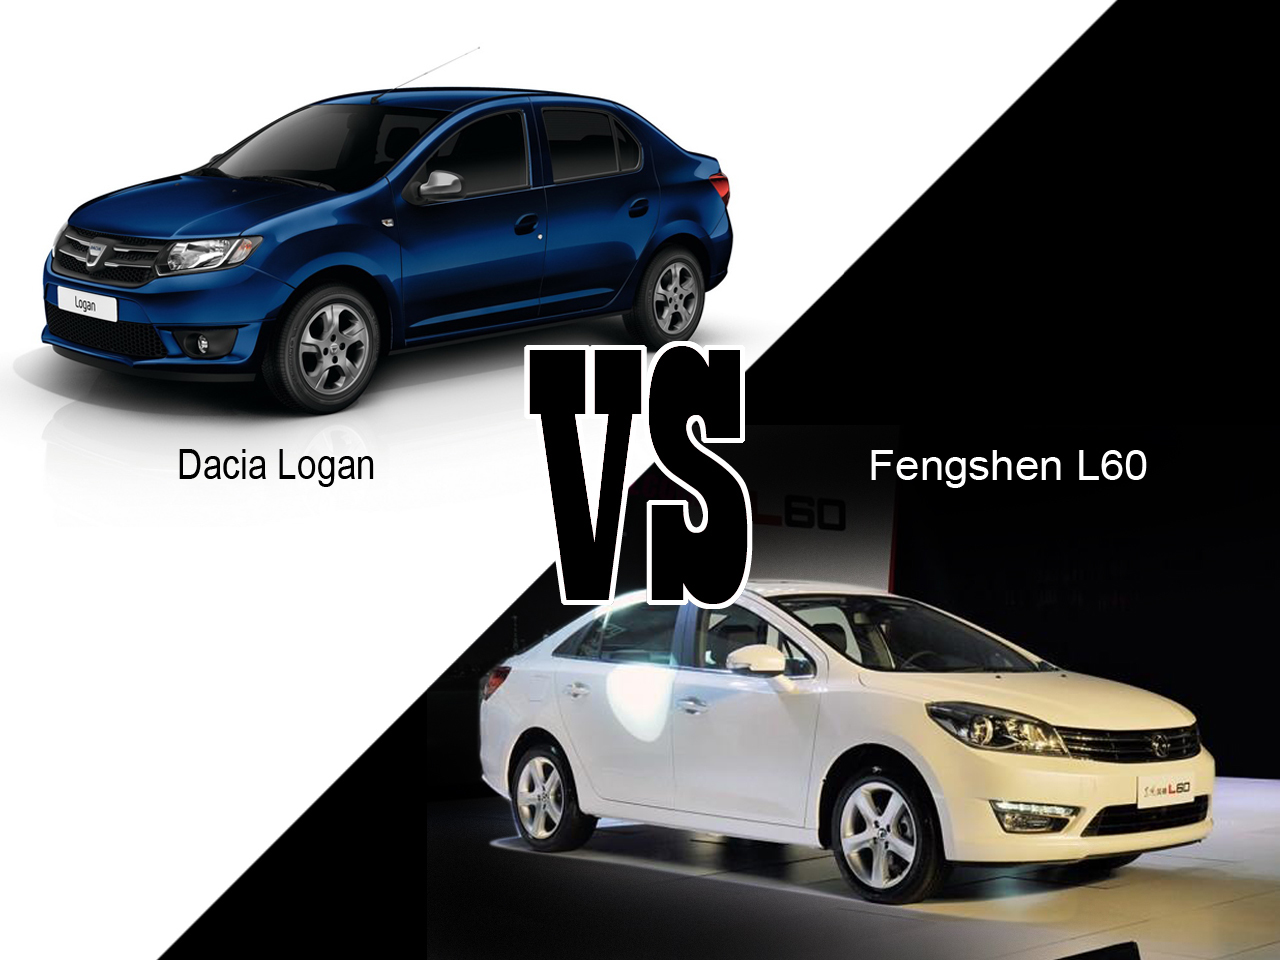 dacia logan vs fengshen l60 le match du low cost photo 1 l 39 argus. Black Bedroom Furniture Sets. Home Design Ideas